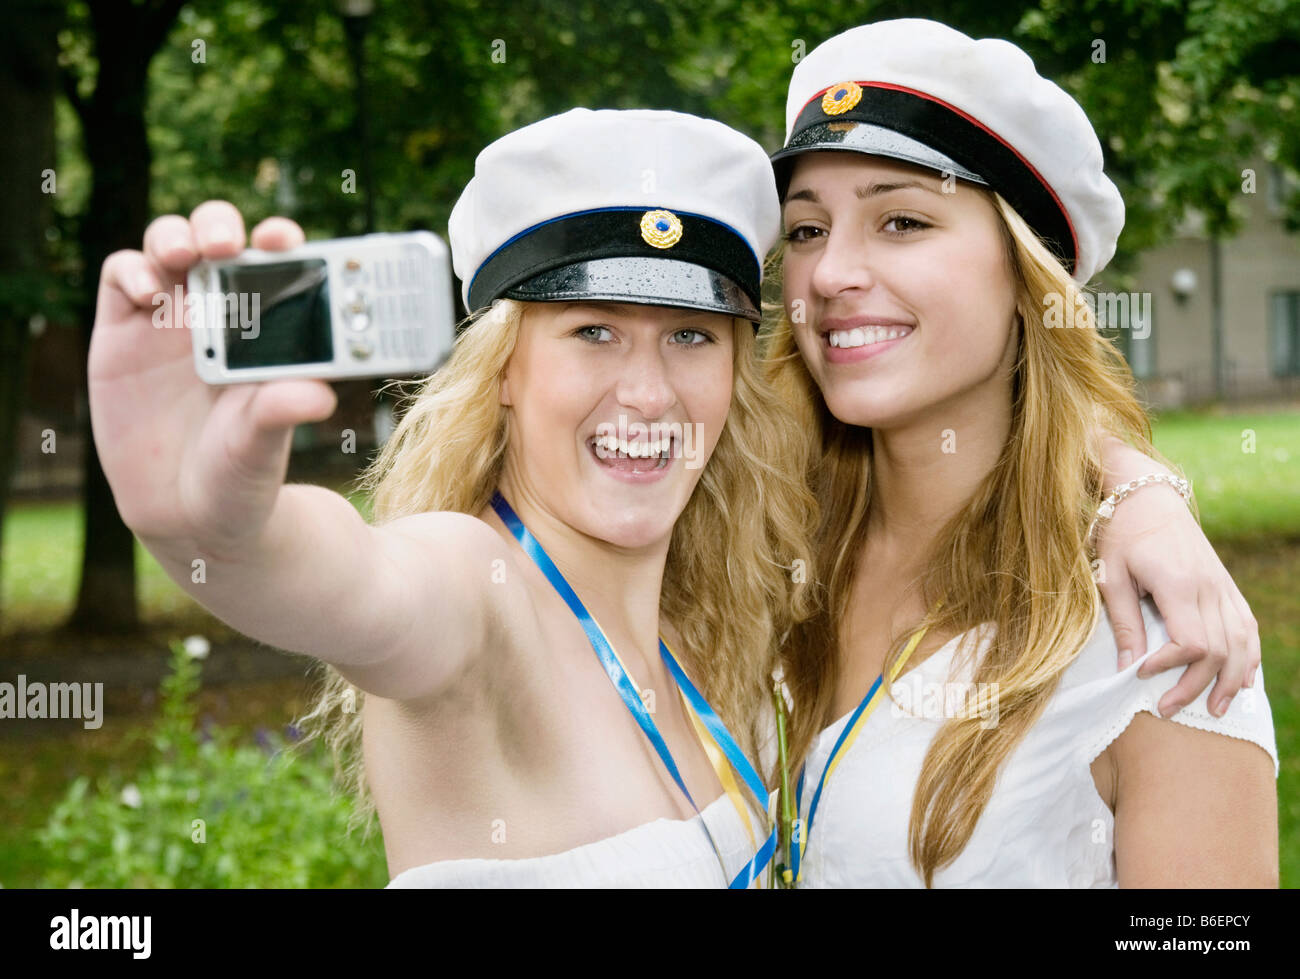 Female students taking picture - Stock Image